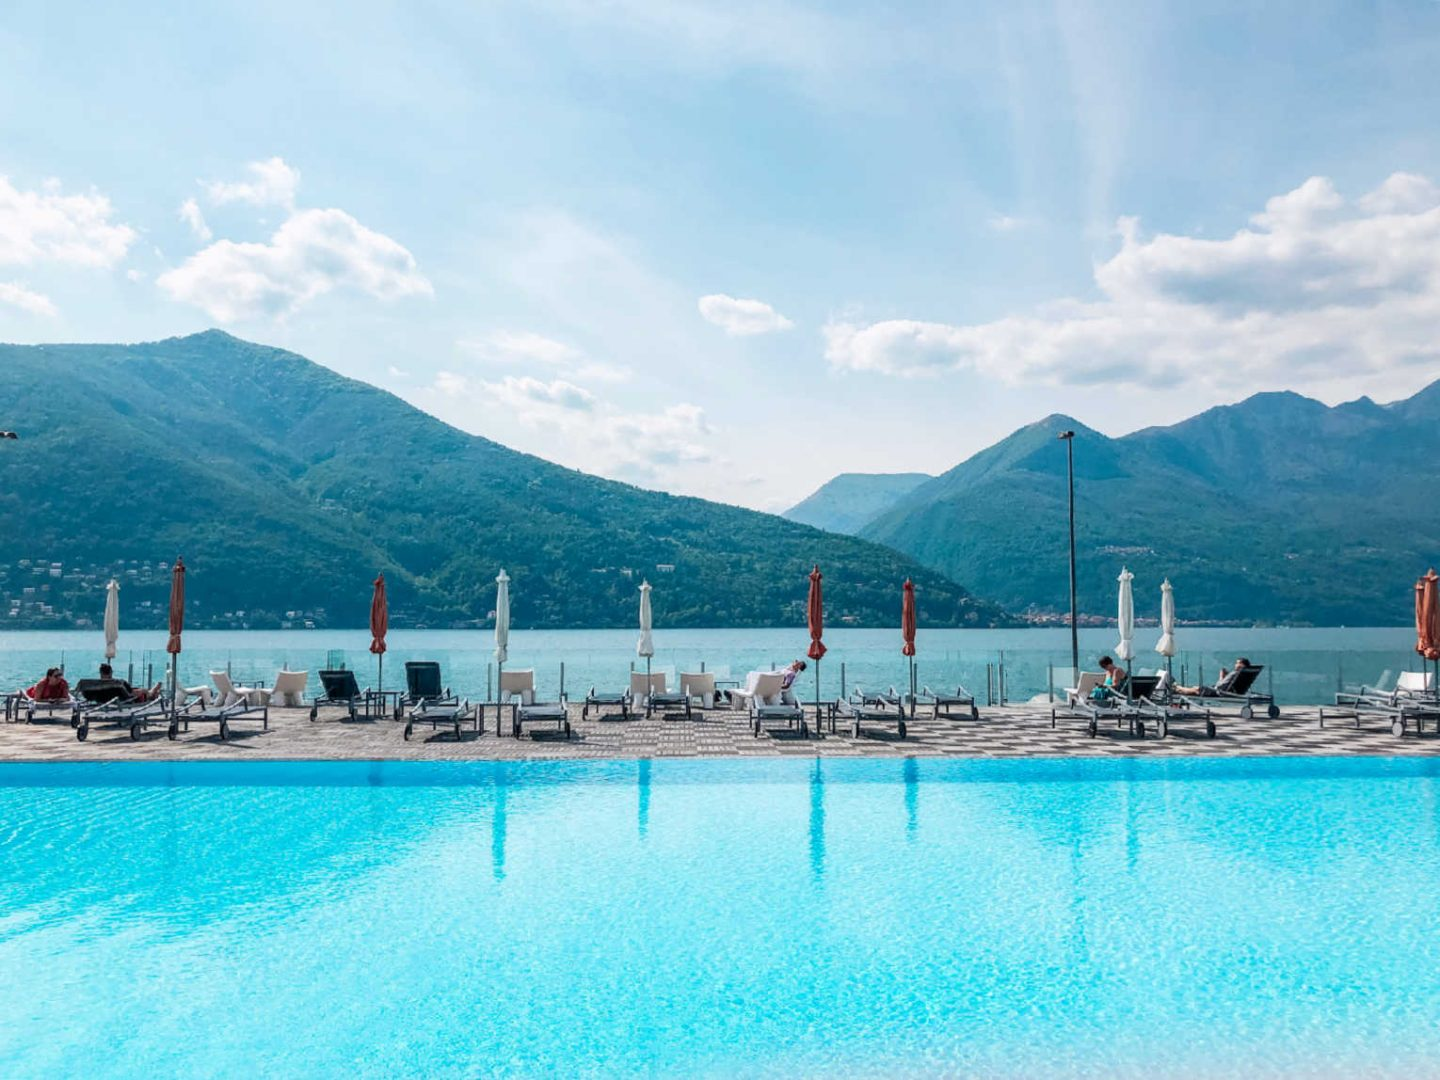 The pool at Golfo Gabella Lake Resort In Maccagno